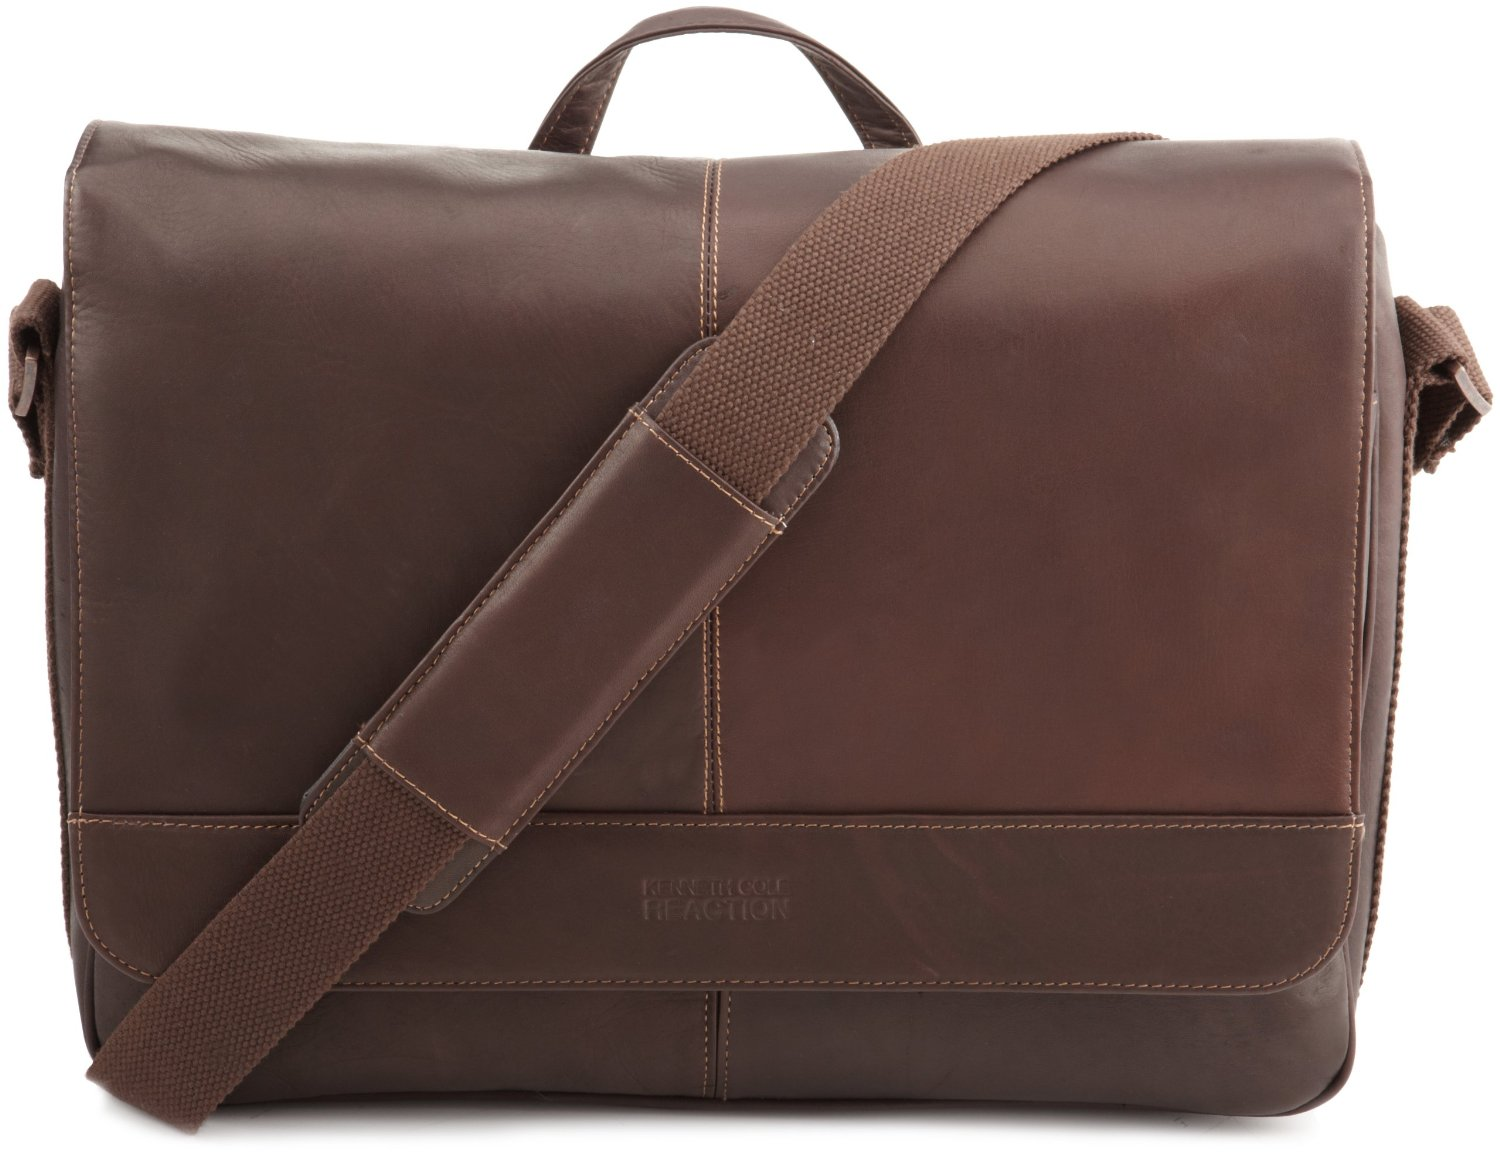 To find the best briefcases for all styles of dress and types of people, we tested 19 bags over two years by walking, running, commuting, biking, and flying with them during our regular workdays. Though a briefcase won't be as ergonomically friendly as a backpack or messenger bag, it is the most stylish choice if you regularly wear a suit or.